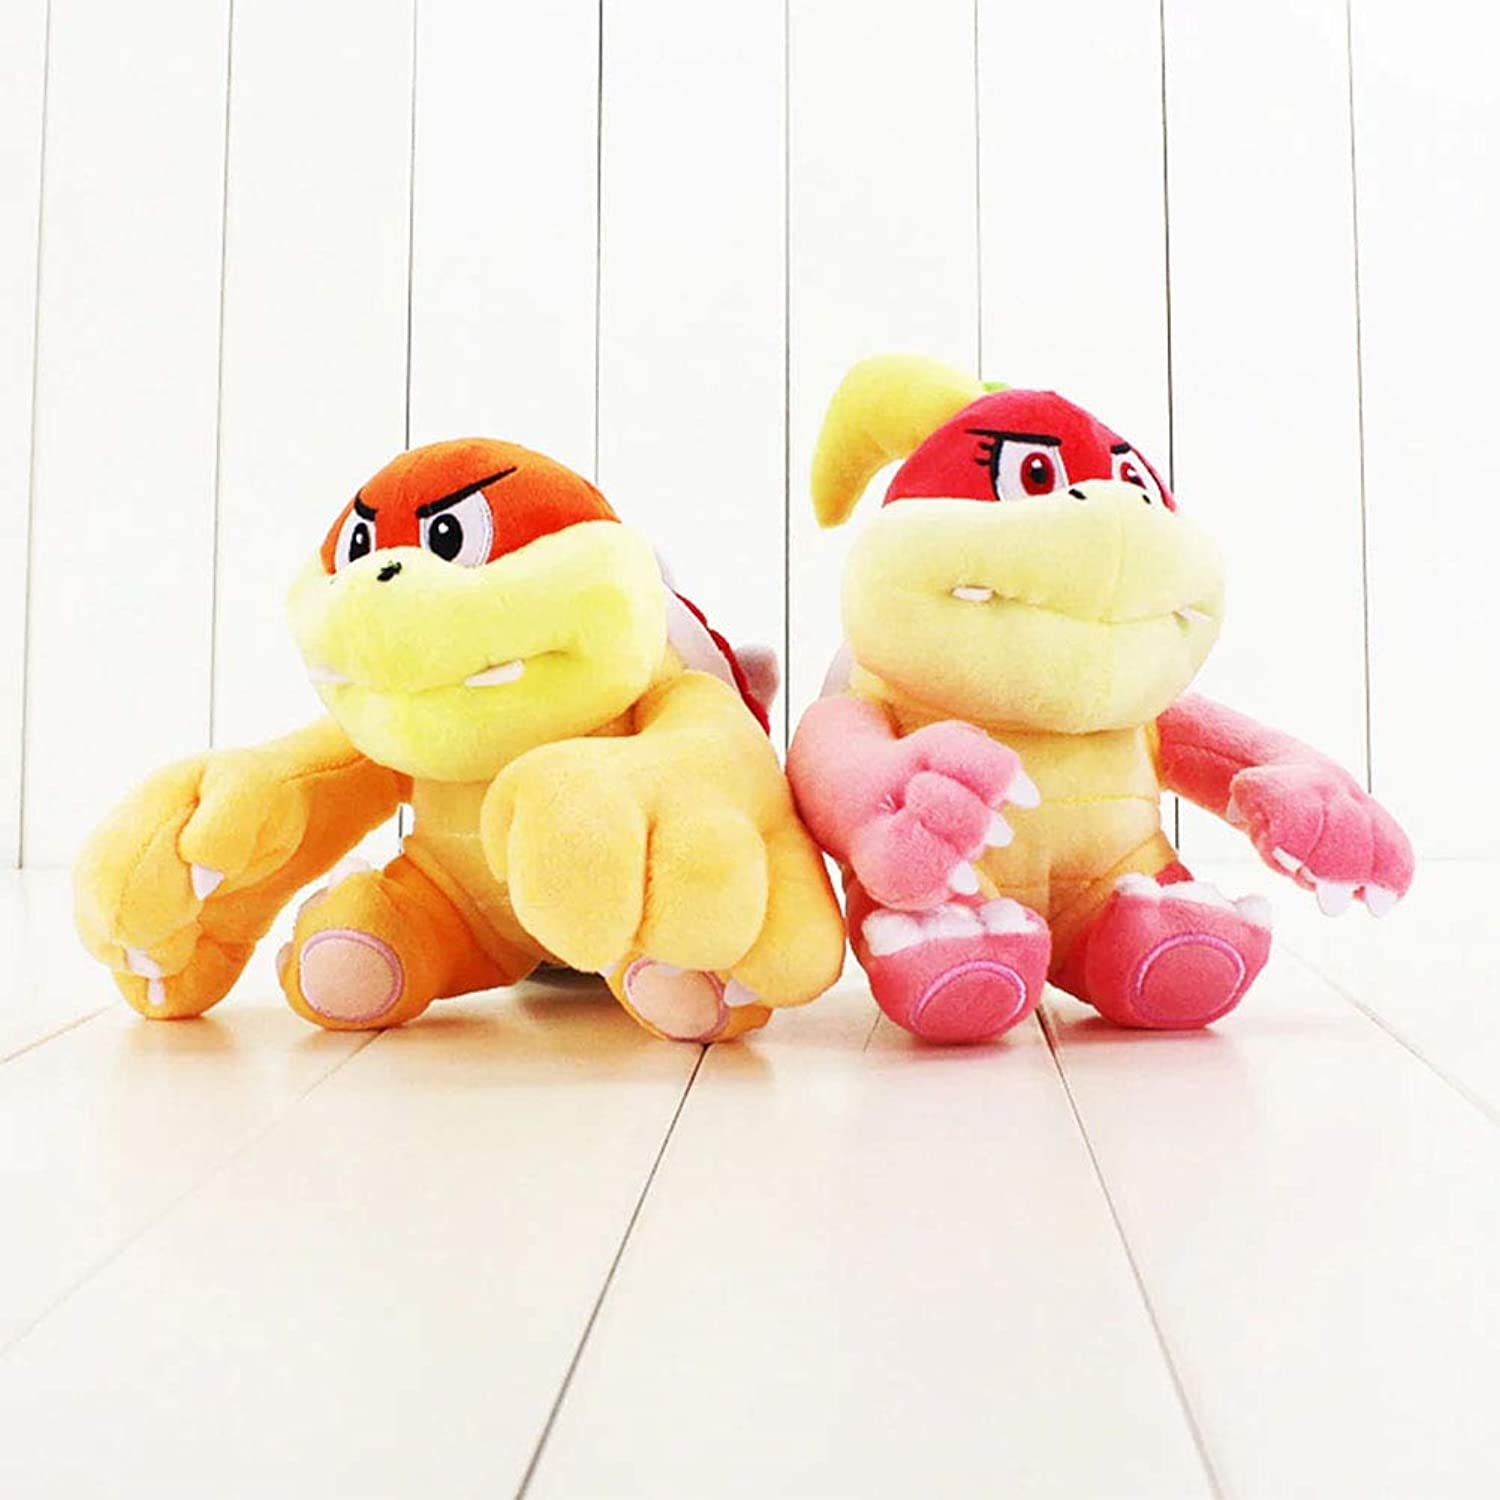 Stuffed Animal 2pcs lot Little Buddy Super Mario Bros All Star Collection Bun Bun Pom Pom Plush Doll Cute Cartoon Koopa Bowser Plush Doll 14cm